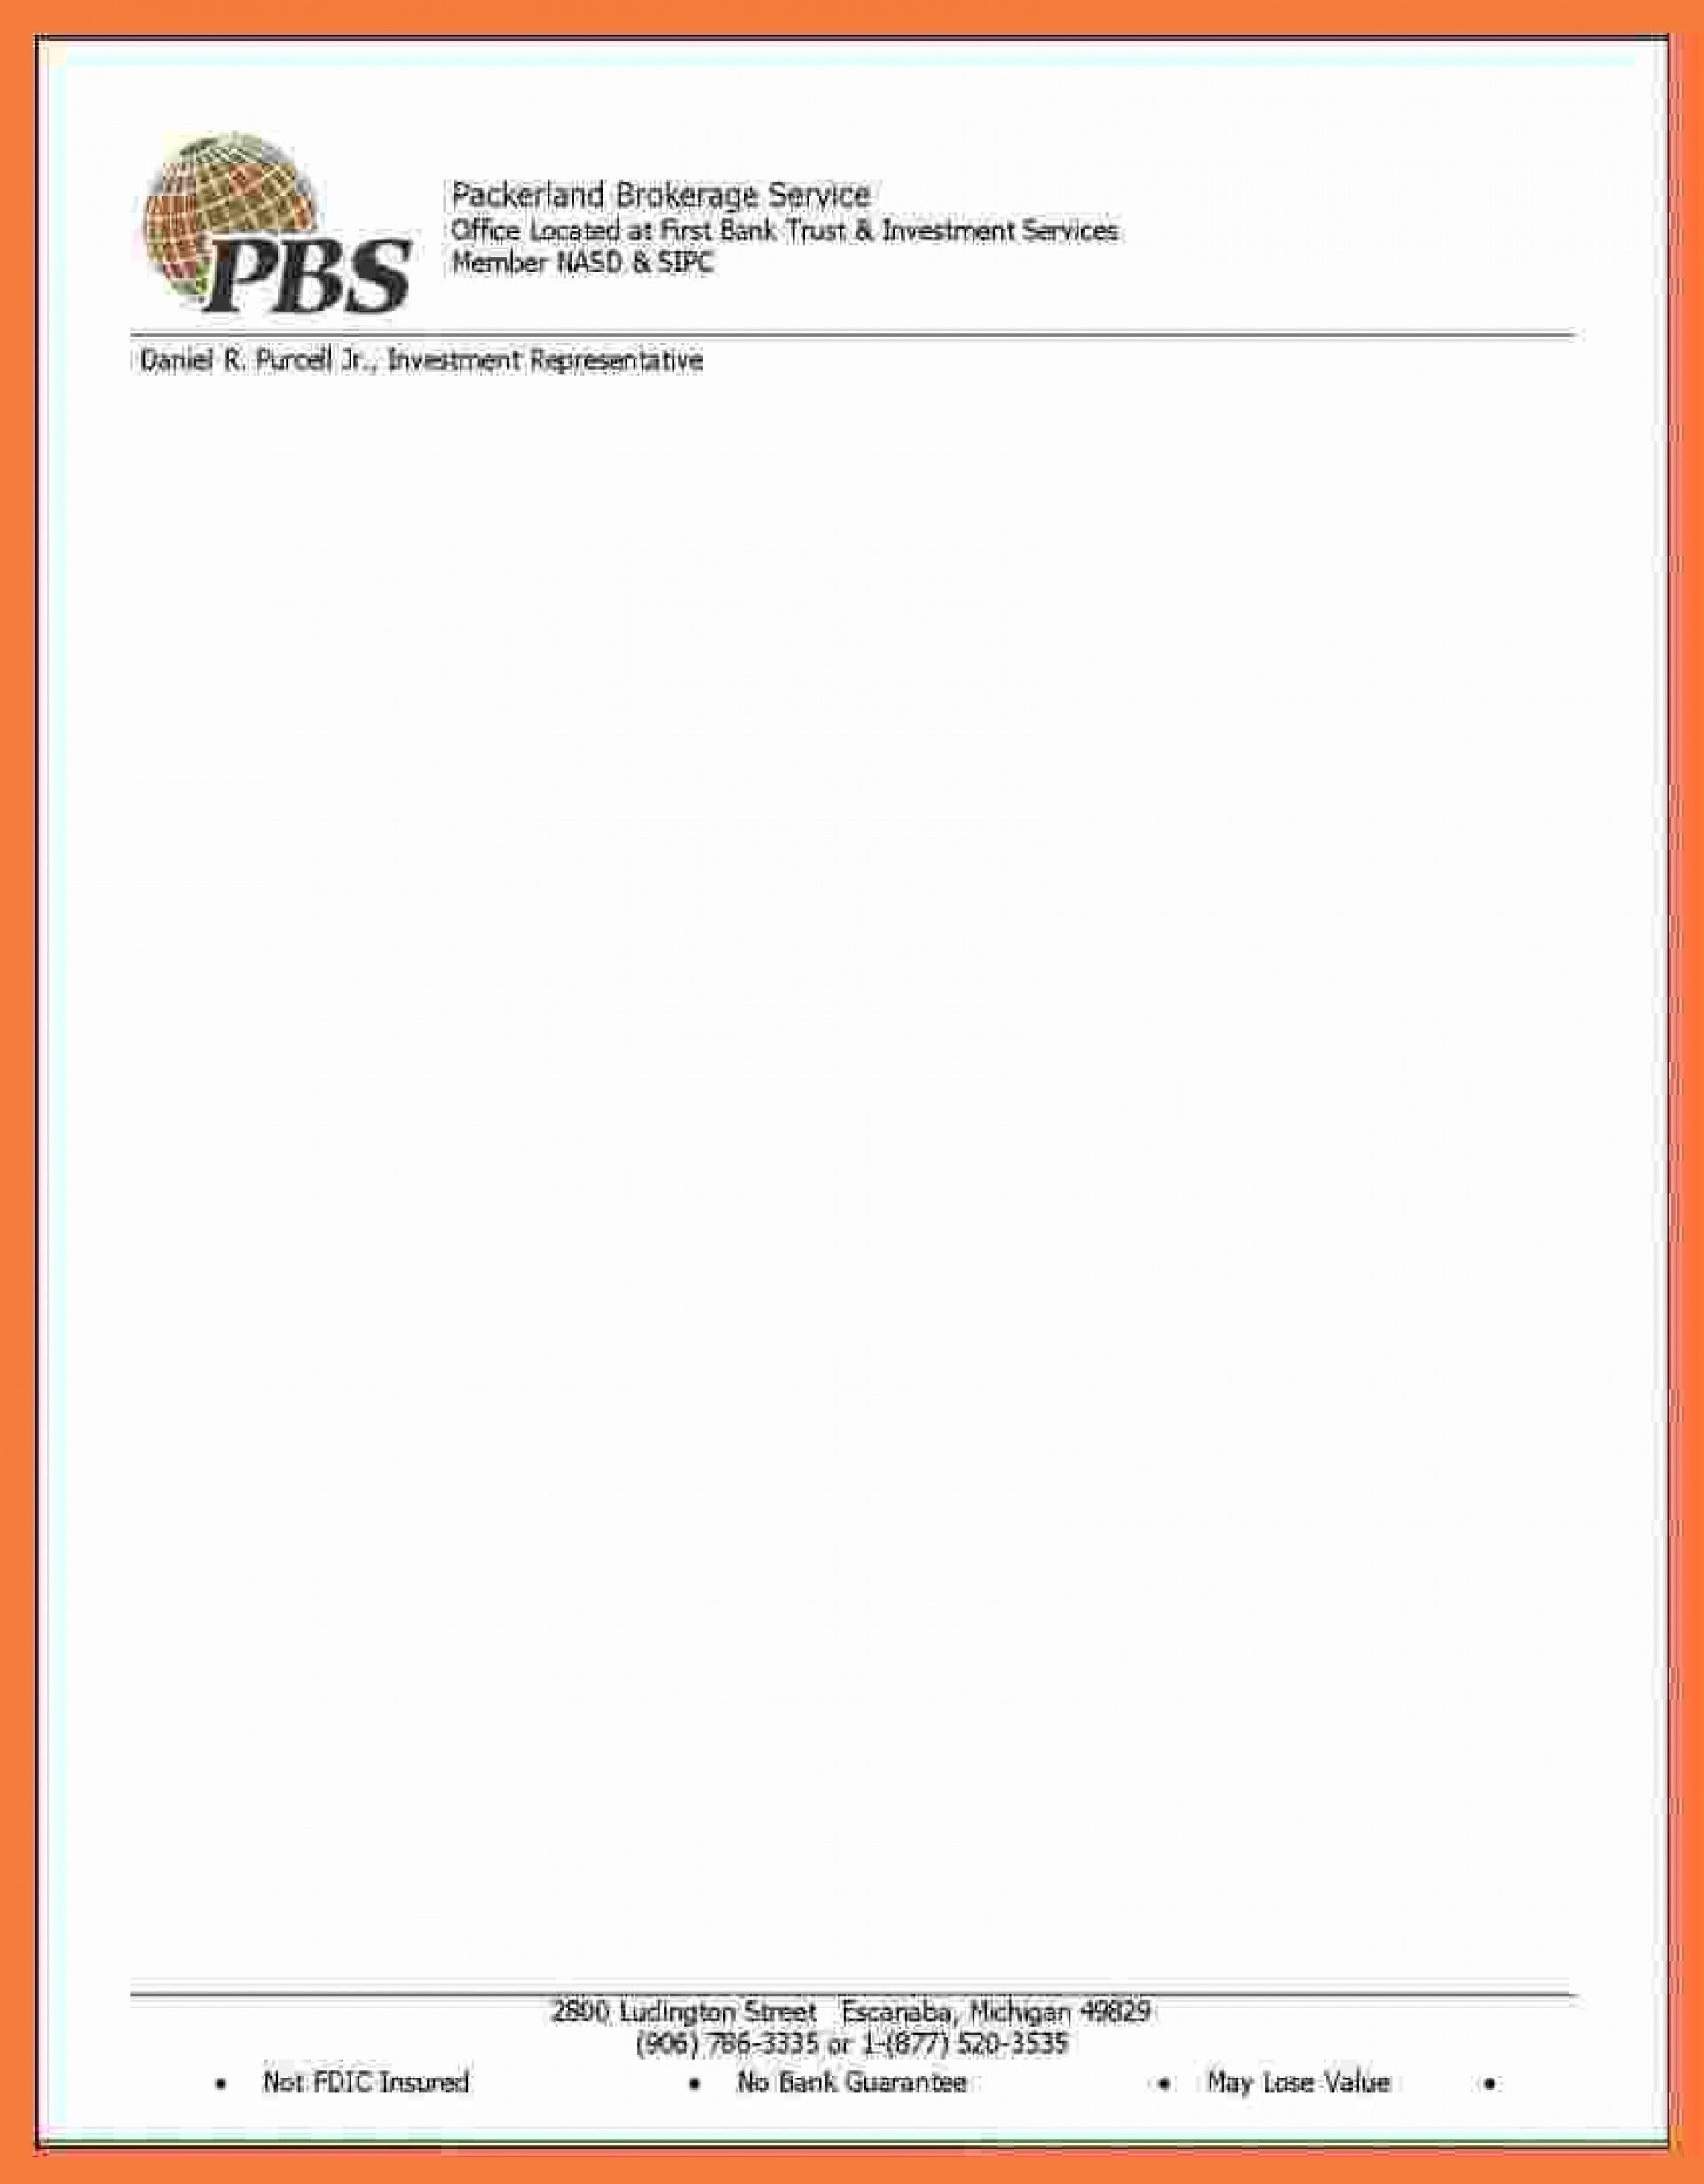 002 Shocking Letterhead Example Free Download High Resolution  Advocate Format Hospital In Word PdfFull